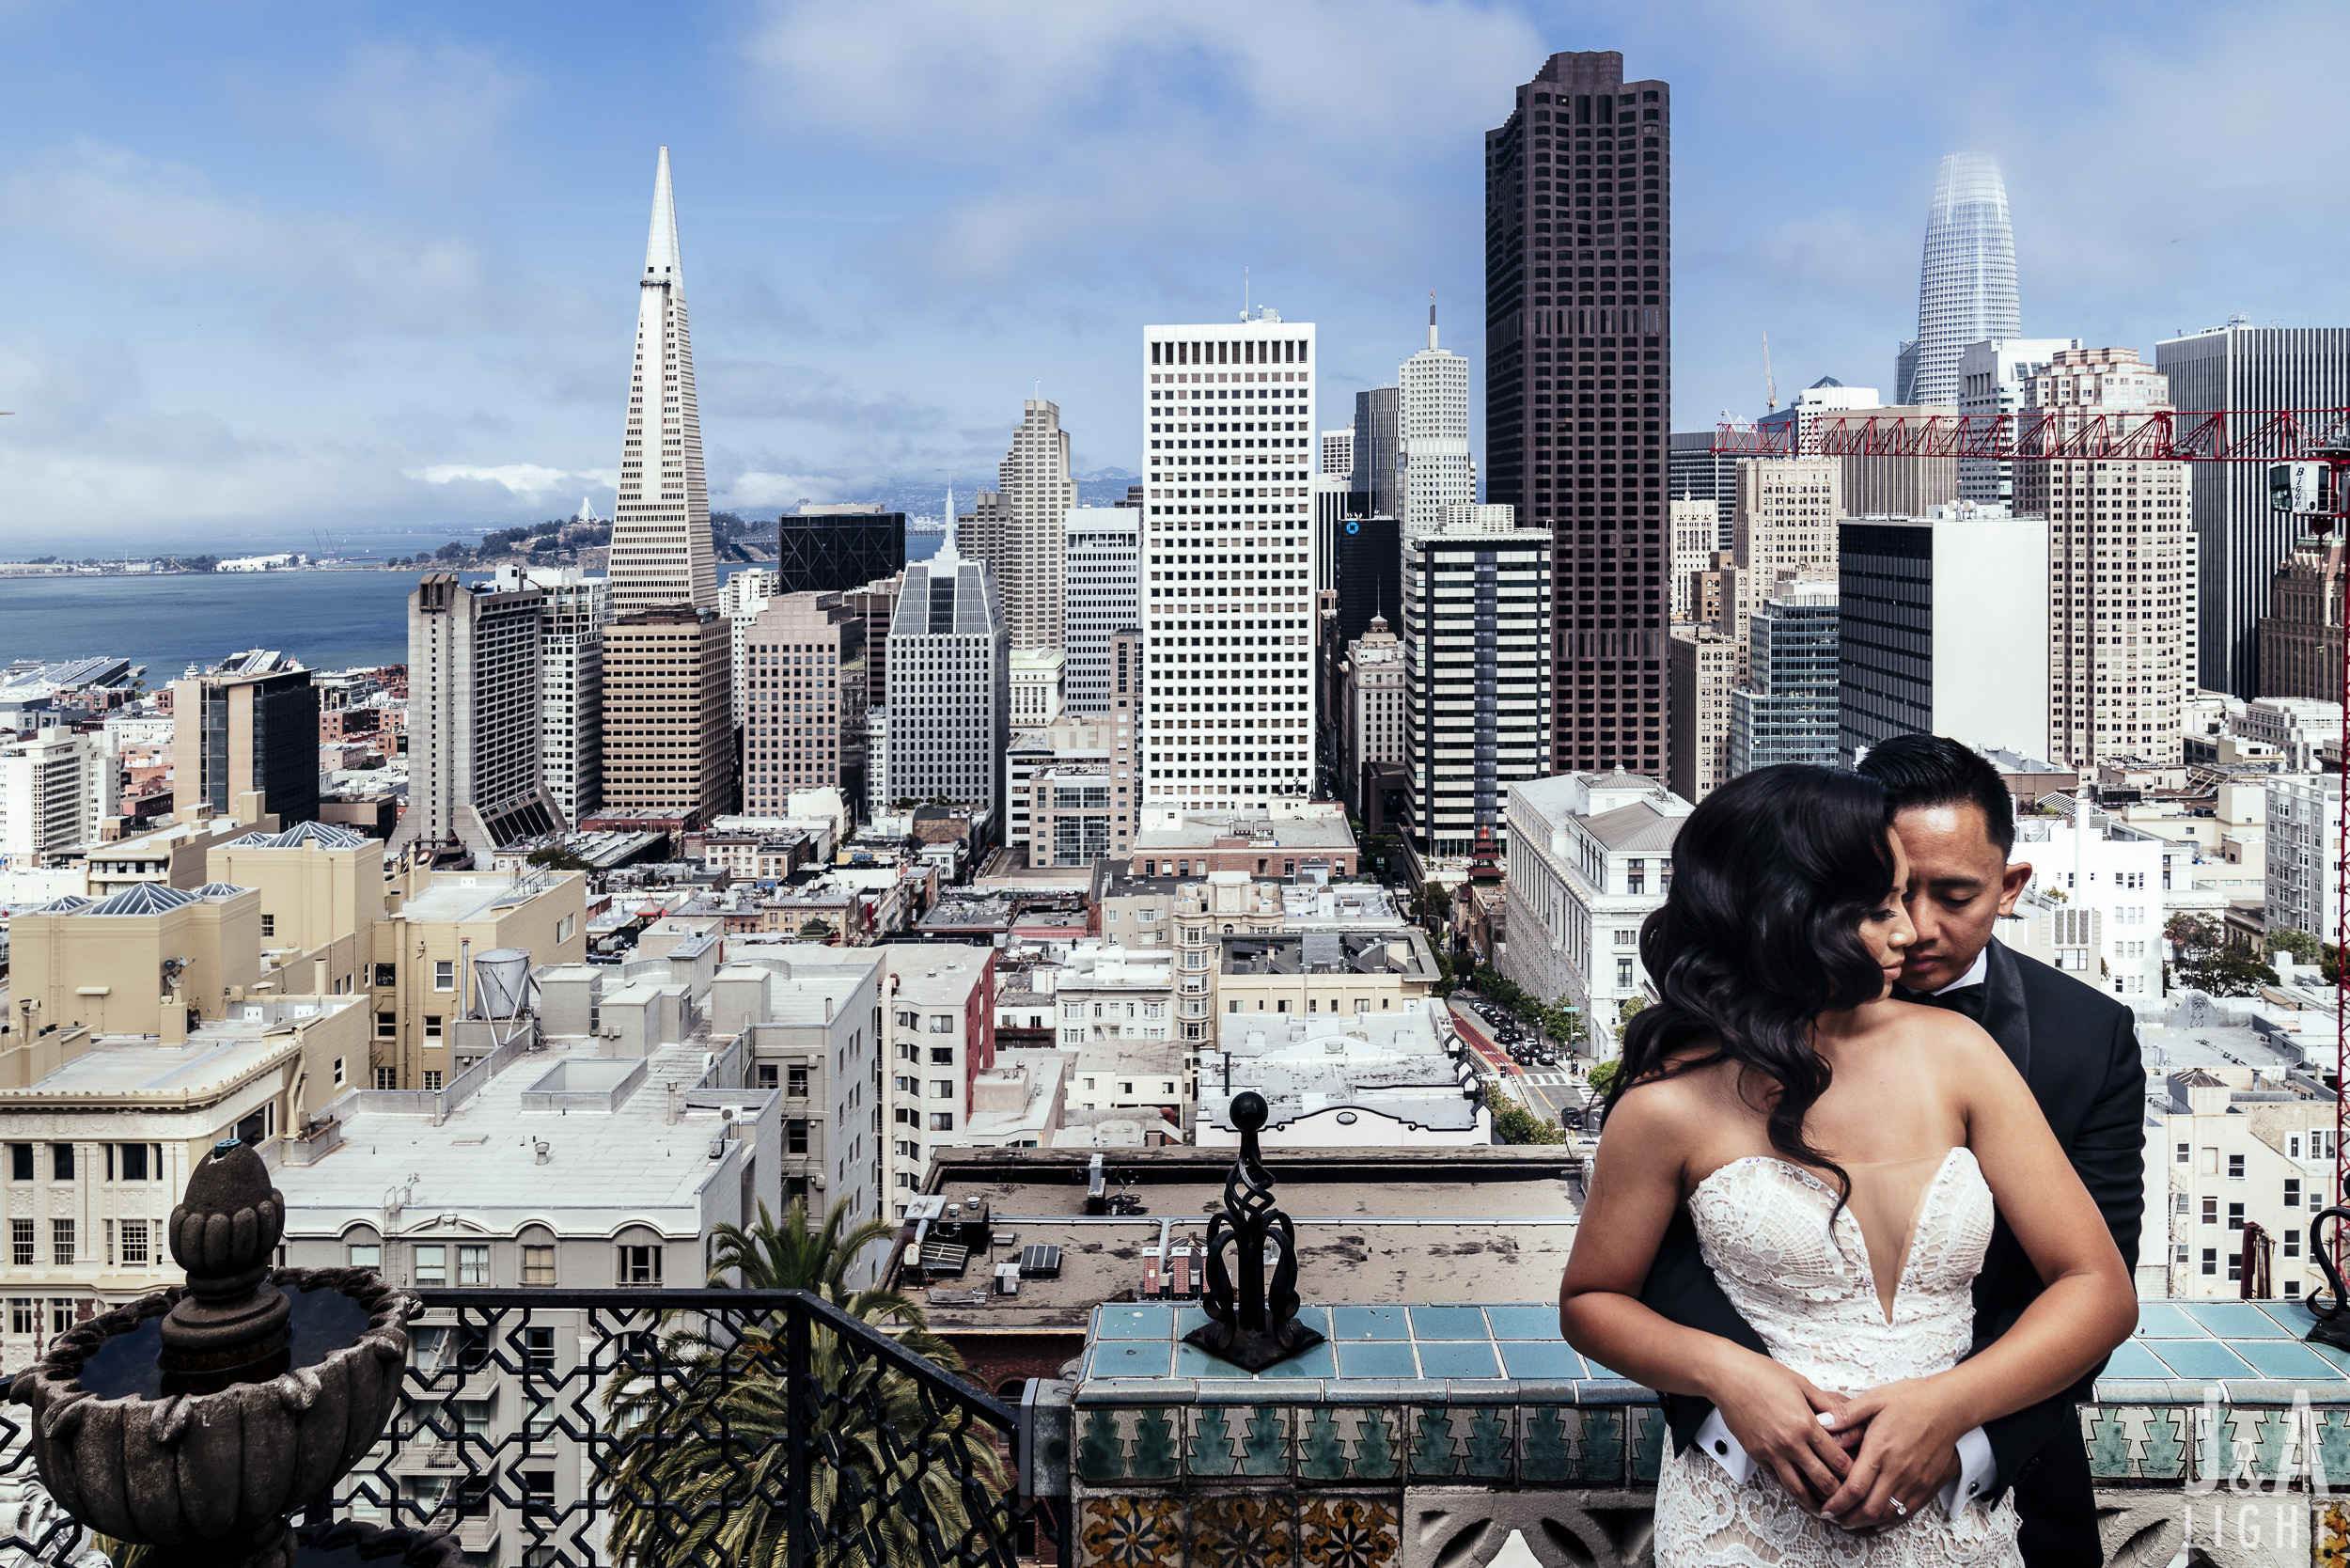 20180722-AdrJohPost-FairmontSanFranciscoWedding_FairmontEngagement-013.jpg